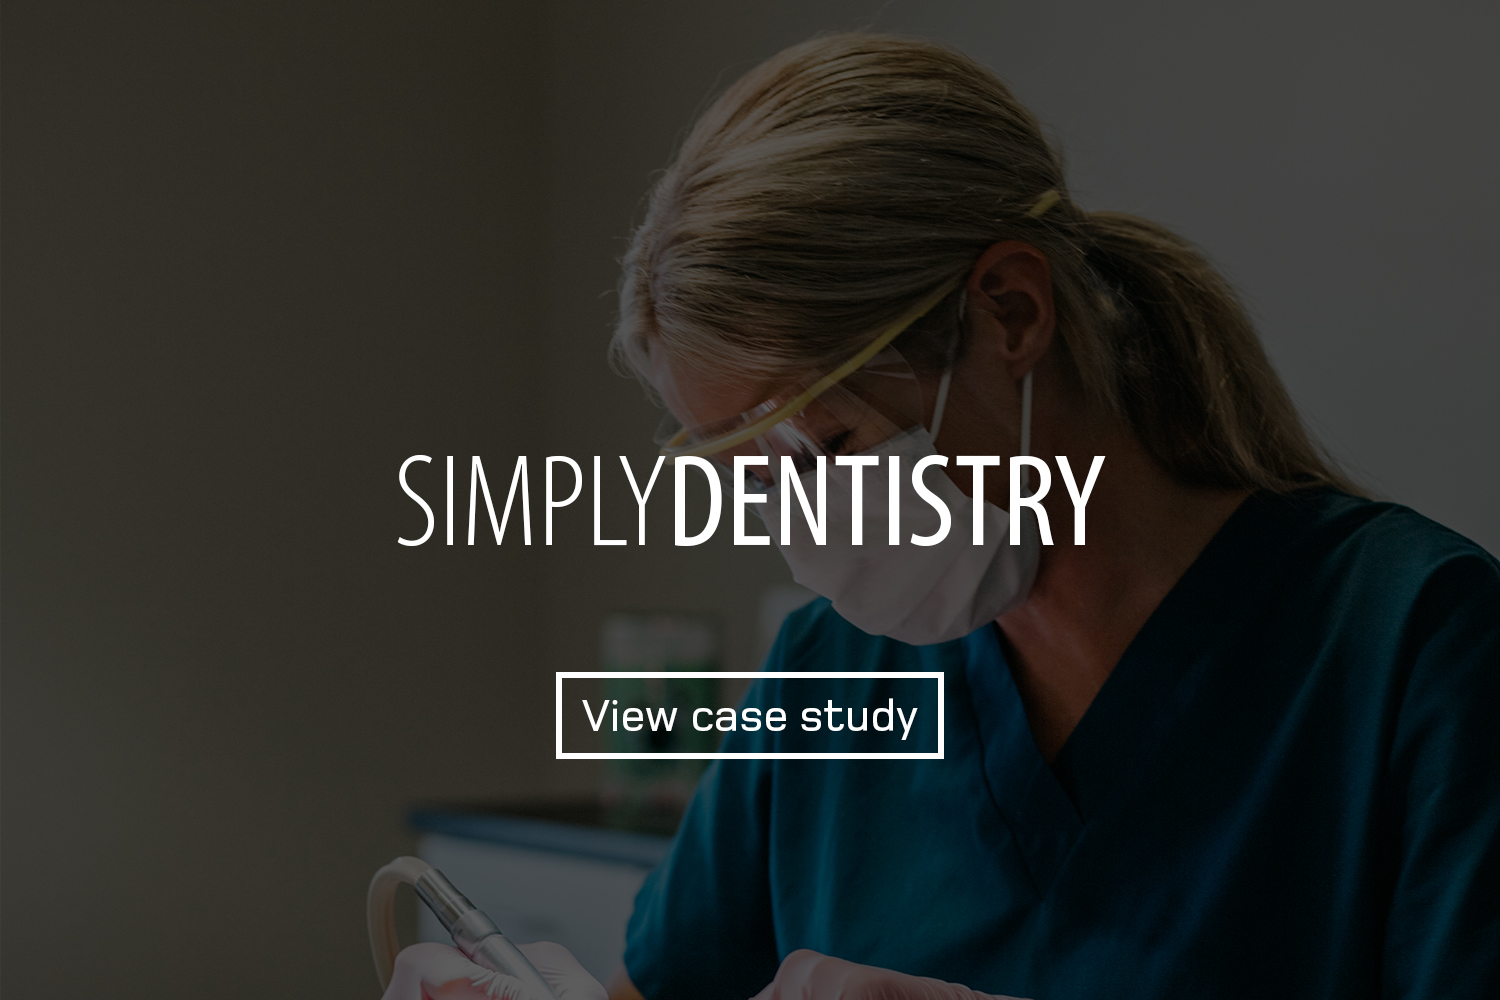 wilcomedia-simply-dentistry-case-study.jpg